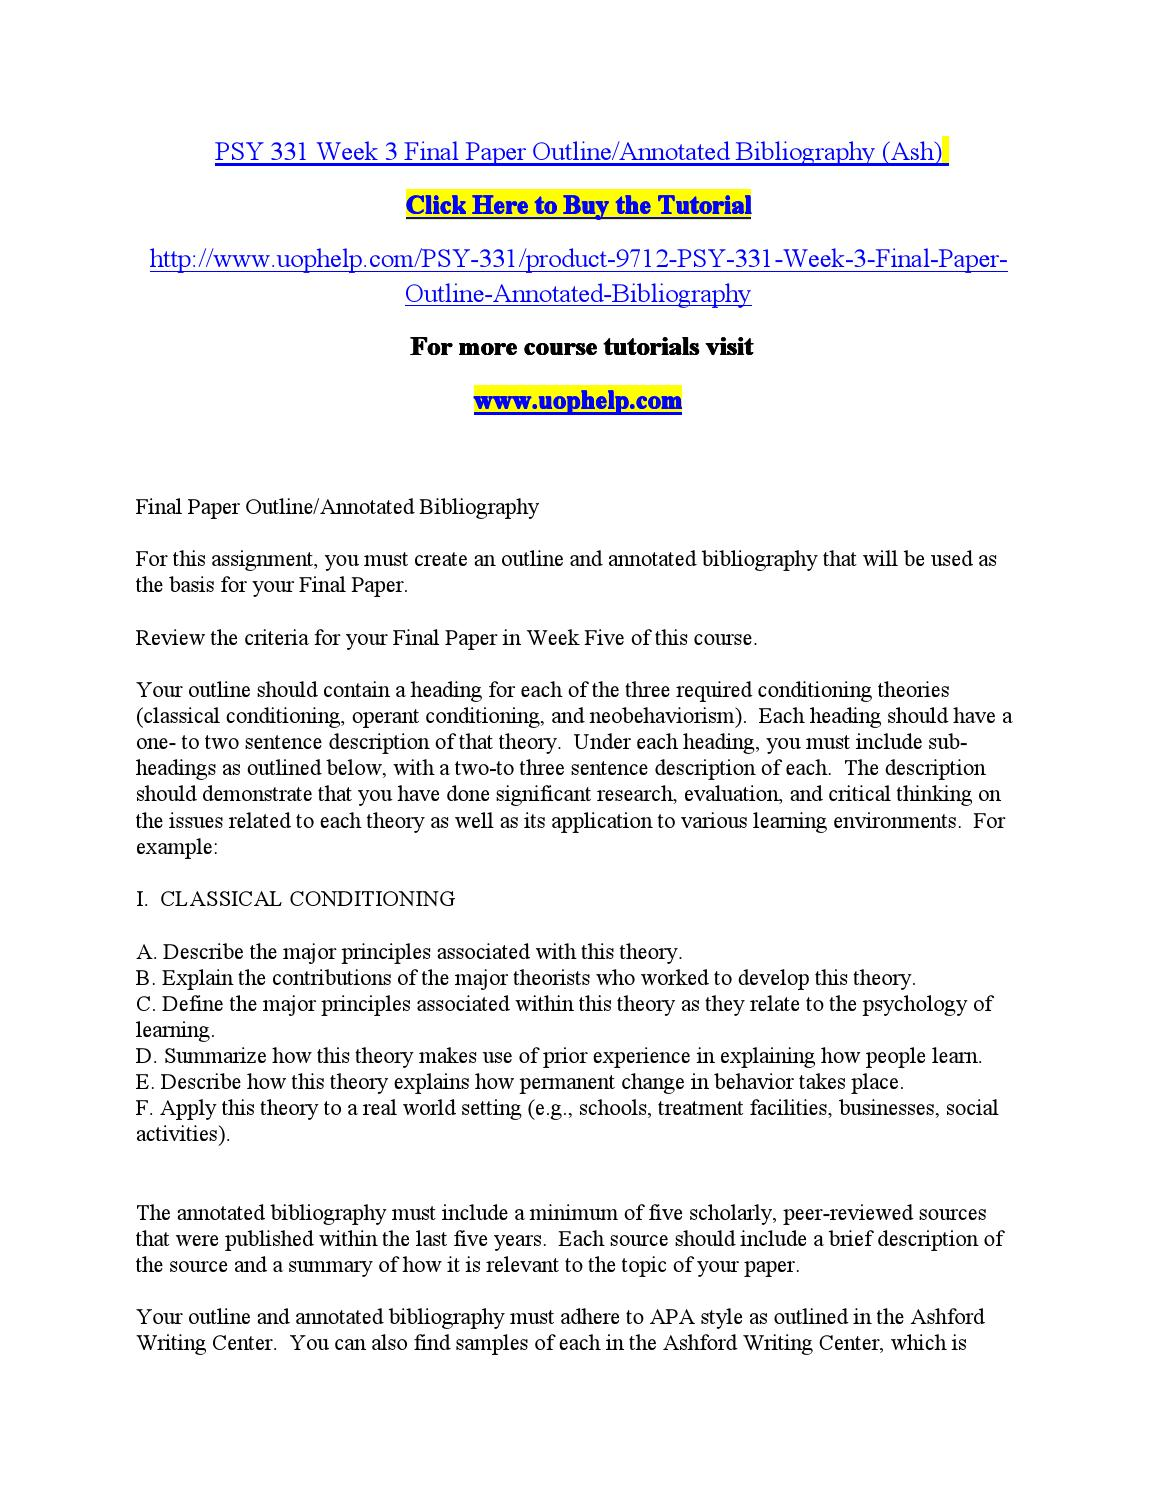 psy 101 outline and annotated bibliography template Sample annotated outline you should notice that each section has verse references to the right, and an explanation (annotation) explaining not.